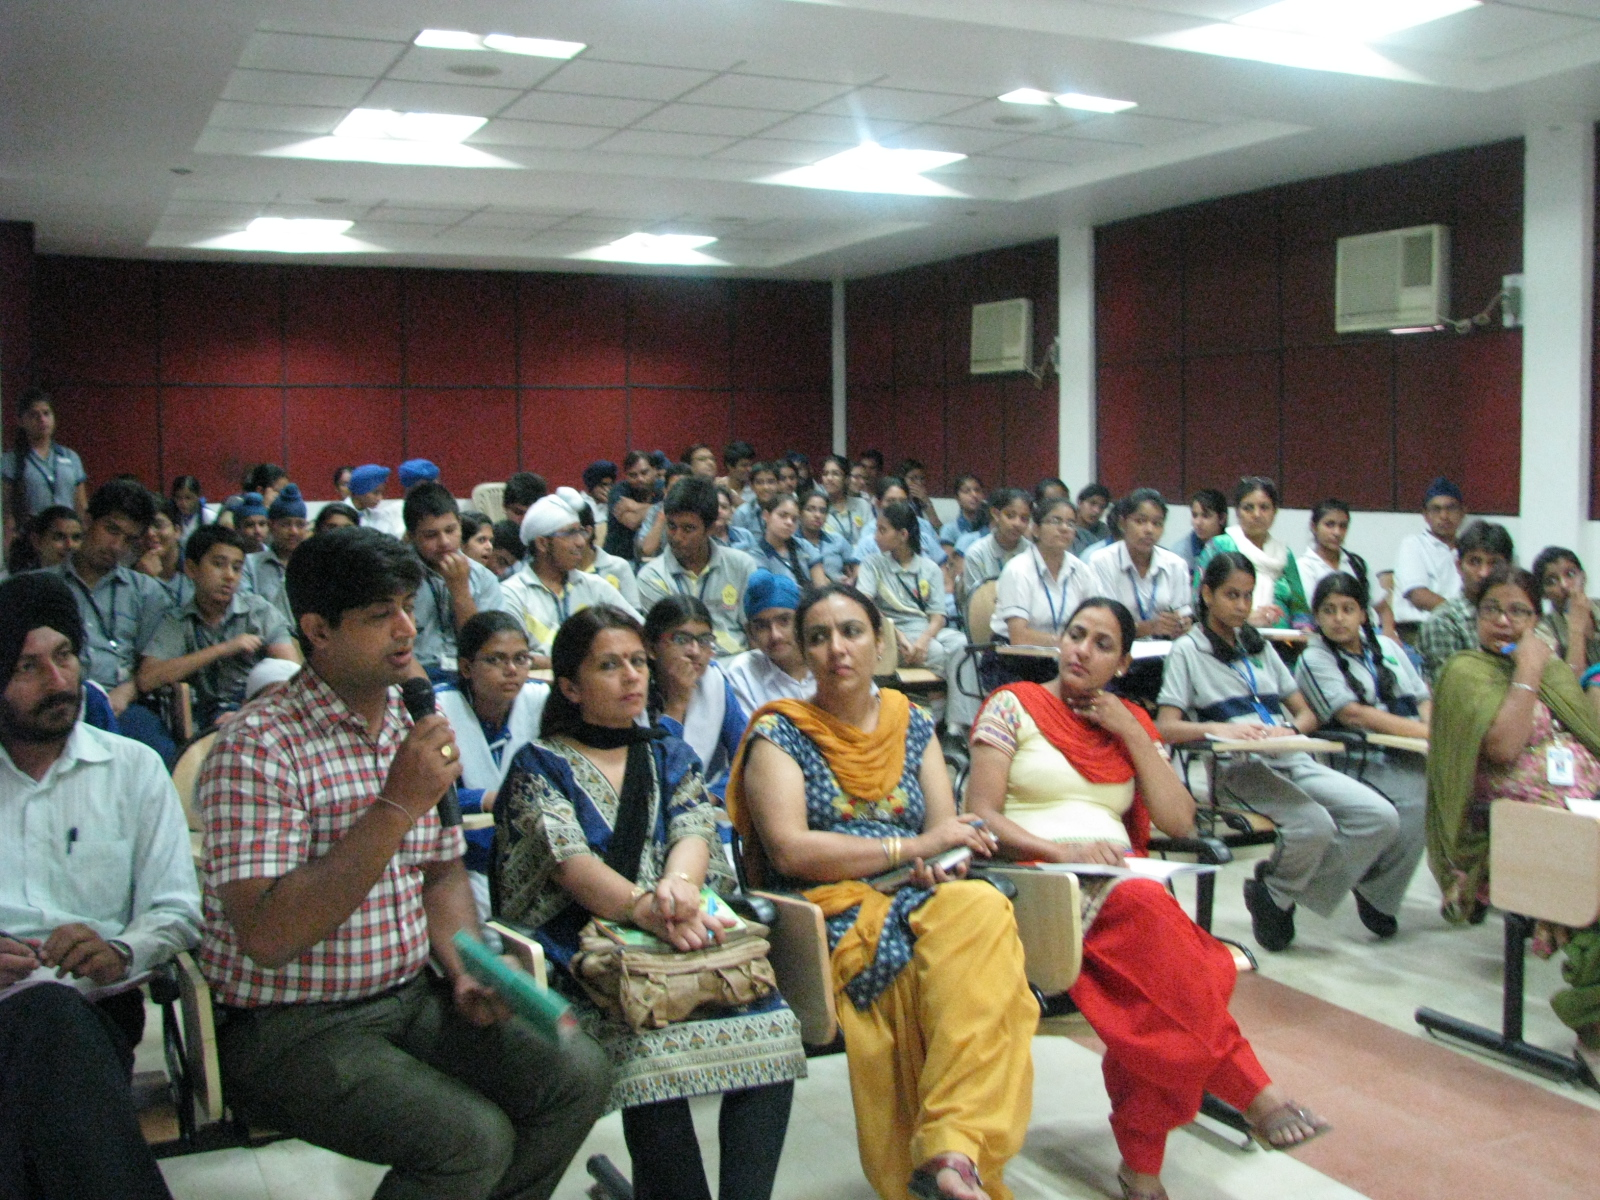 http://upload.wikimedia.org/wikipedia/commons/2/21/Punjabi_Wikipedia_Workshop-17Aug2012-10.JPG